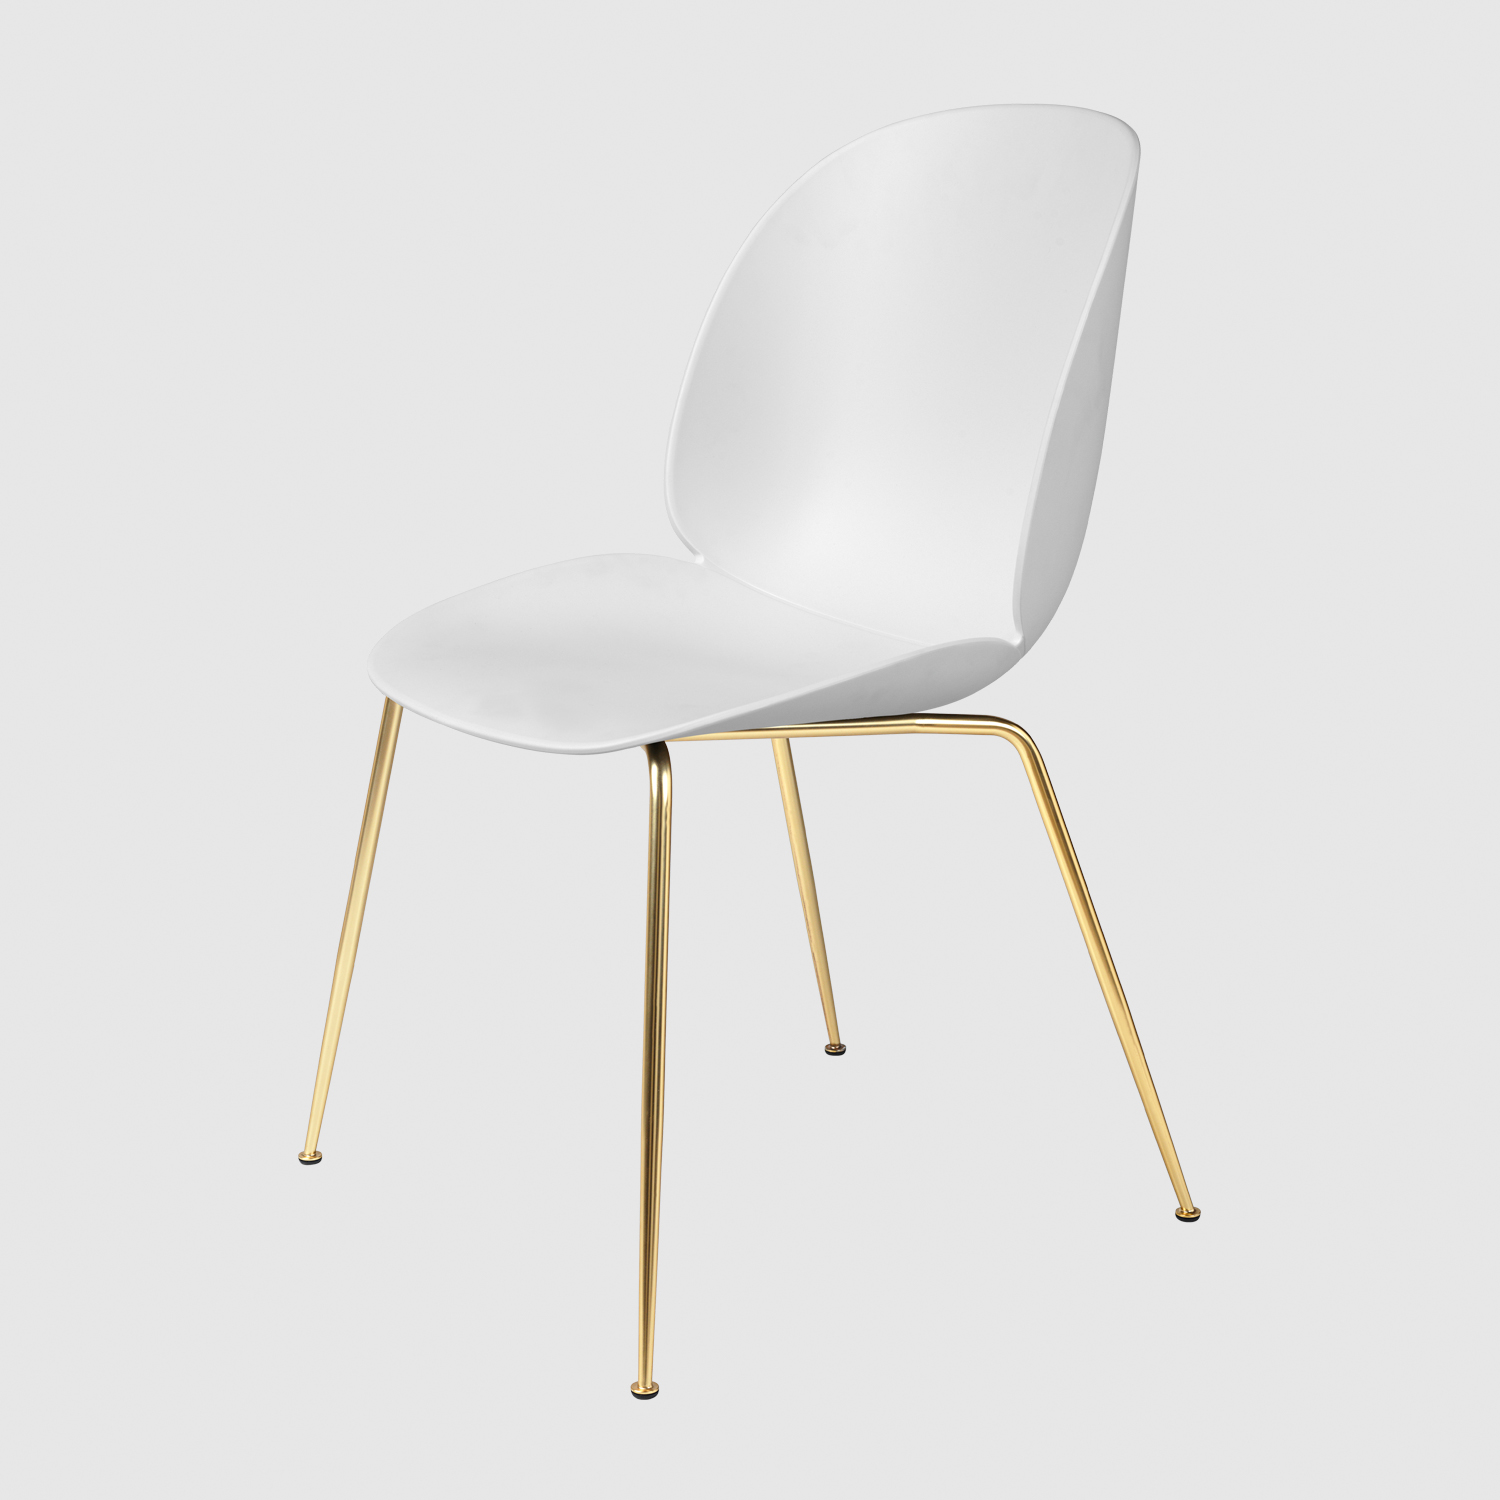 Beetle_DiningChair_Conic_Unupholstered_Brass_White_Front.jpg